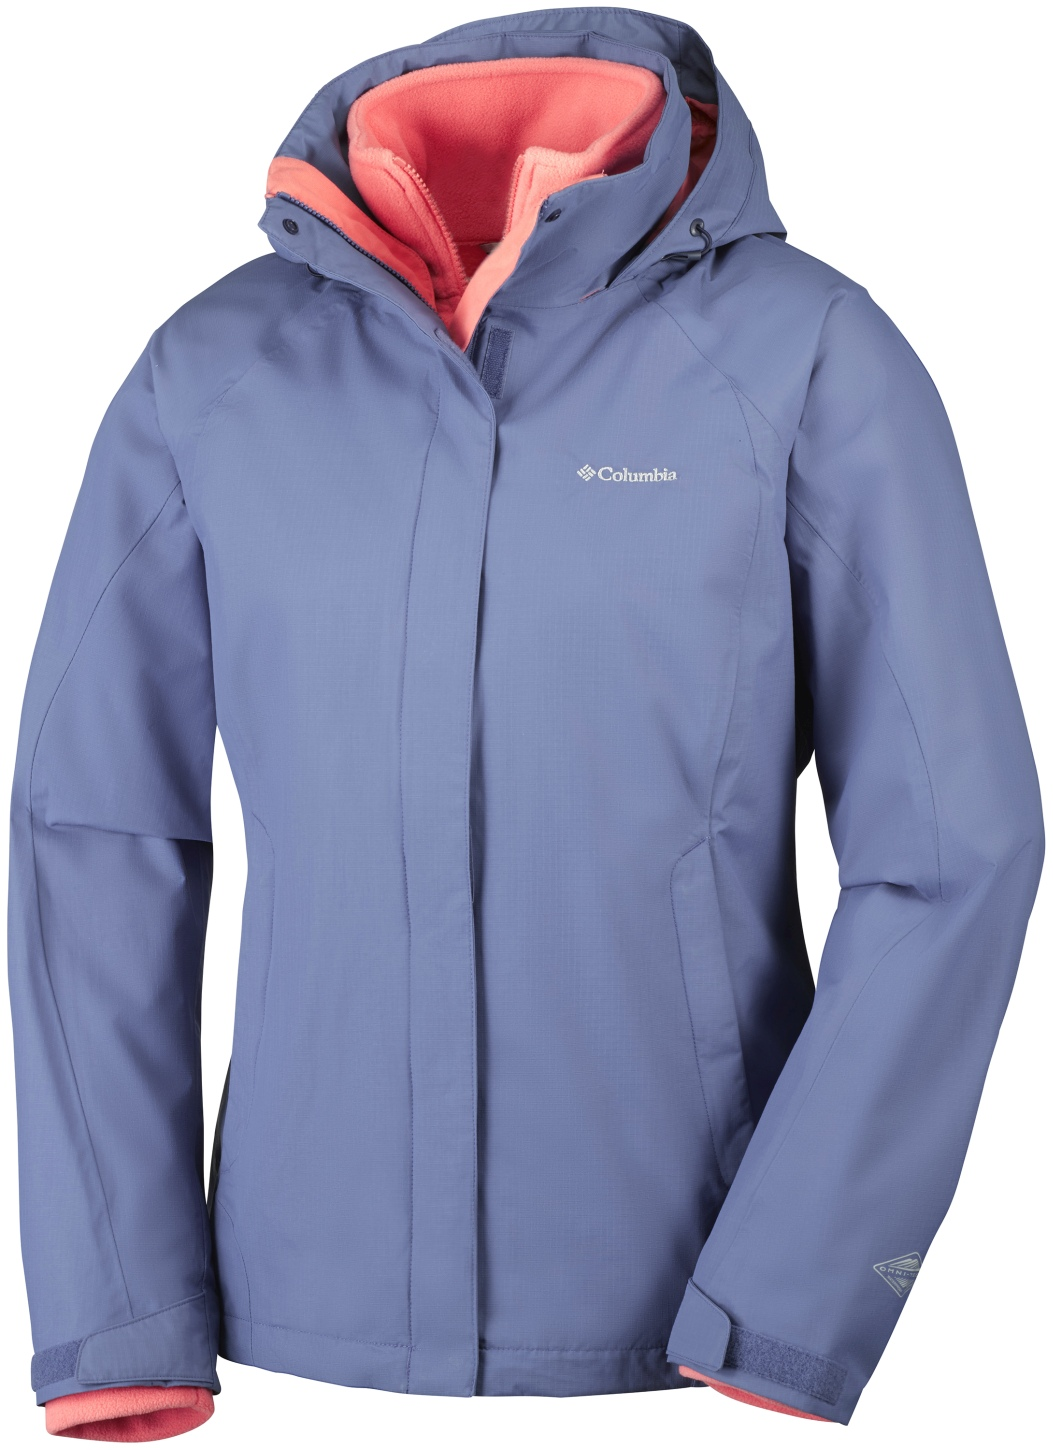 Columbia Women's Venture On Interchange Ski Jacket Bluebell-30